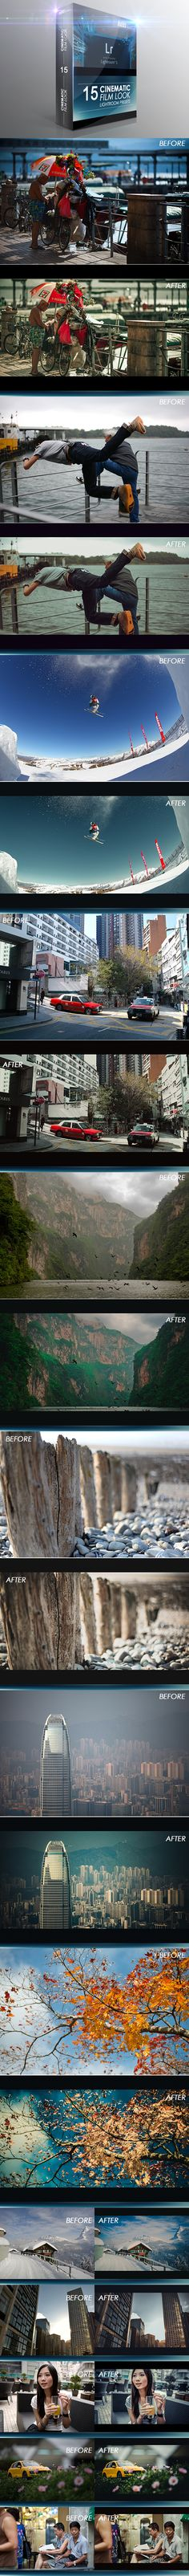 15 Cinematic Film Look Lightroom Presets. Download here: http://graphicriver.net/item/15-cinematic-film-look-lightroom-presets/8132499?ref=ksioks